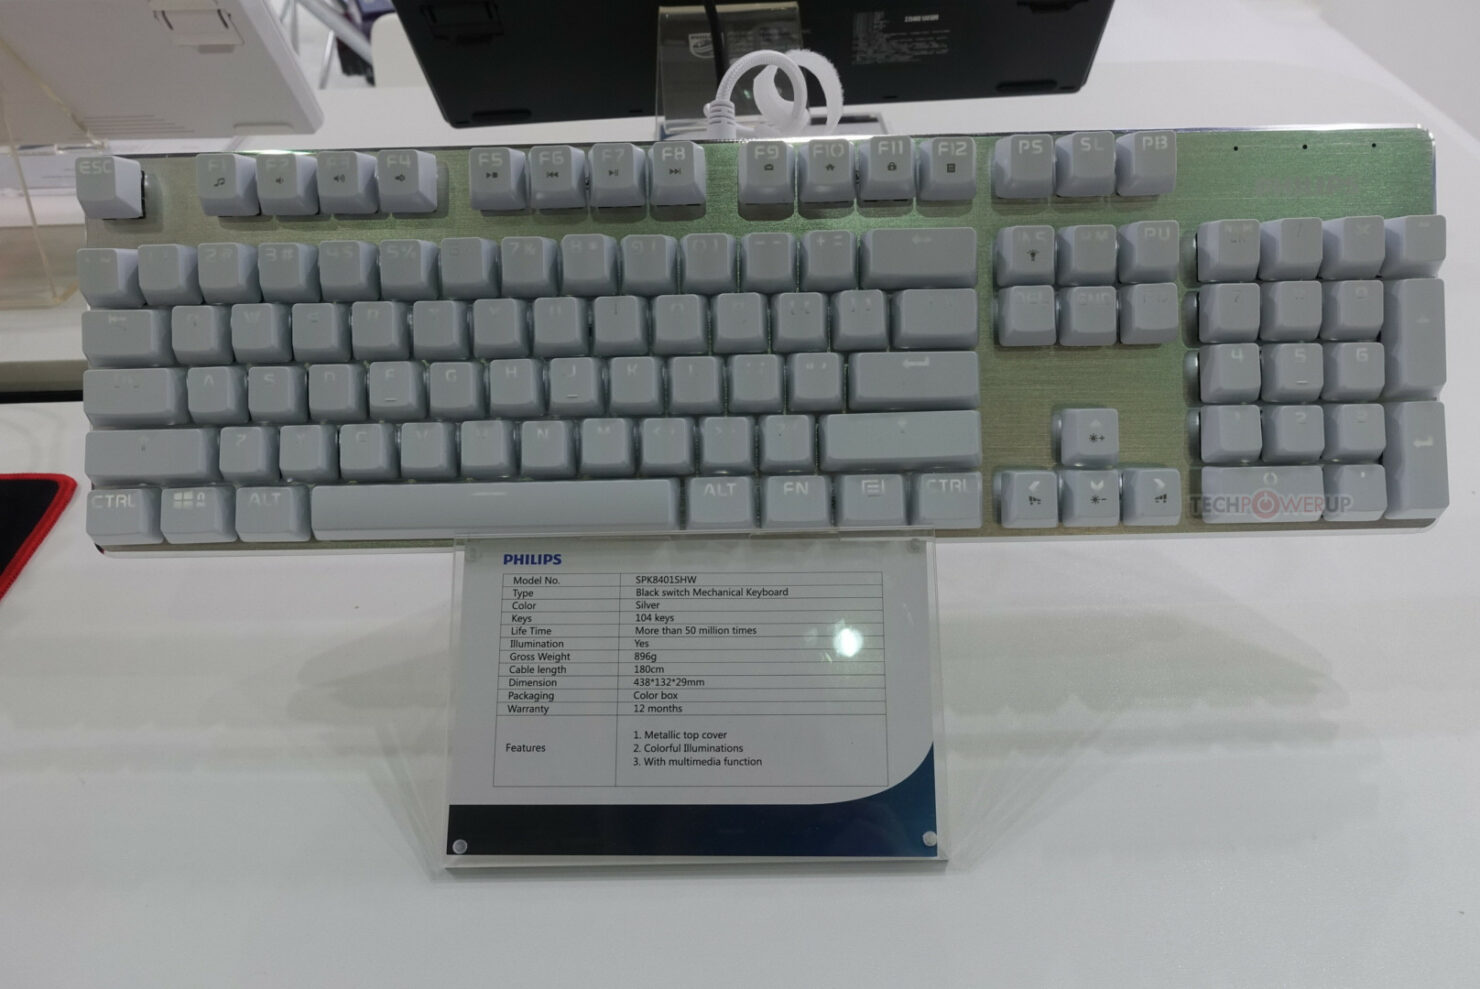 wccftech-philips-keyboards-computex-2018-4